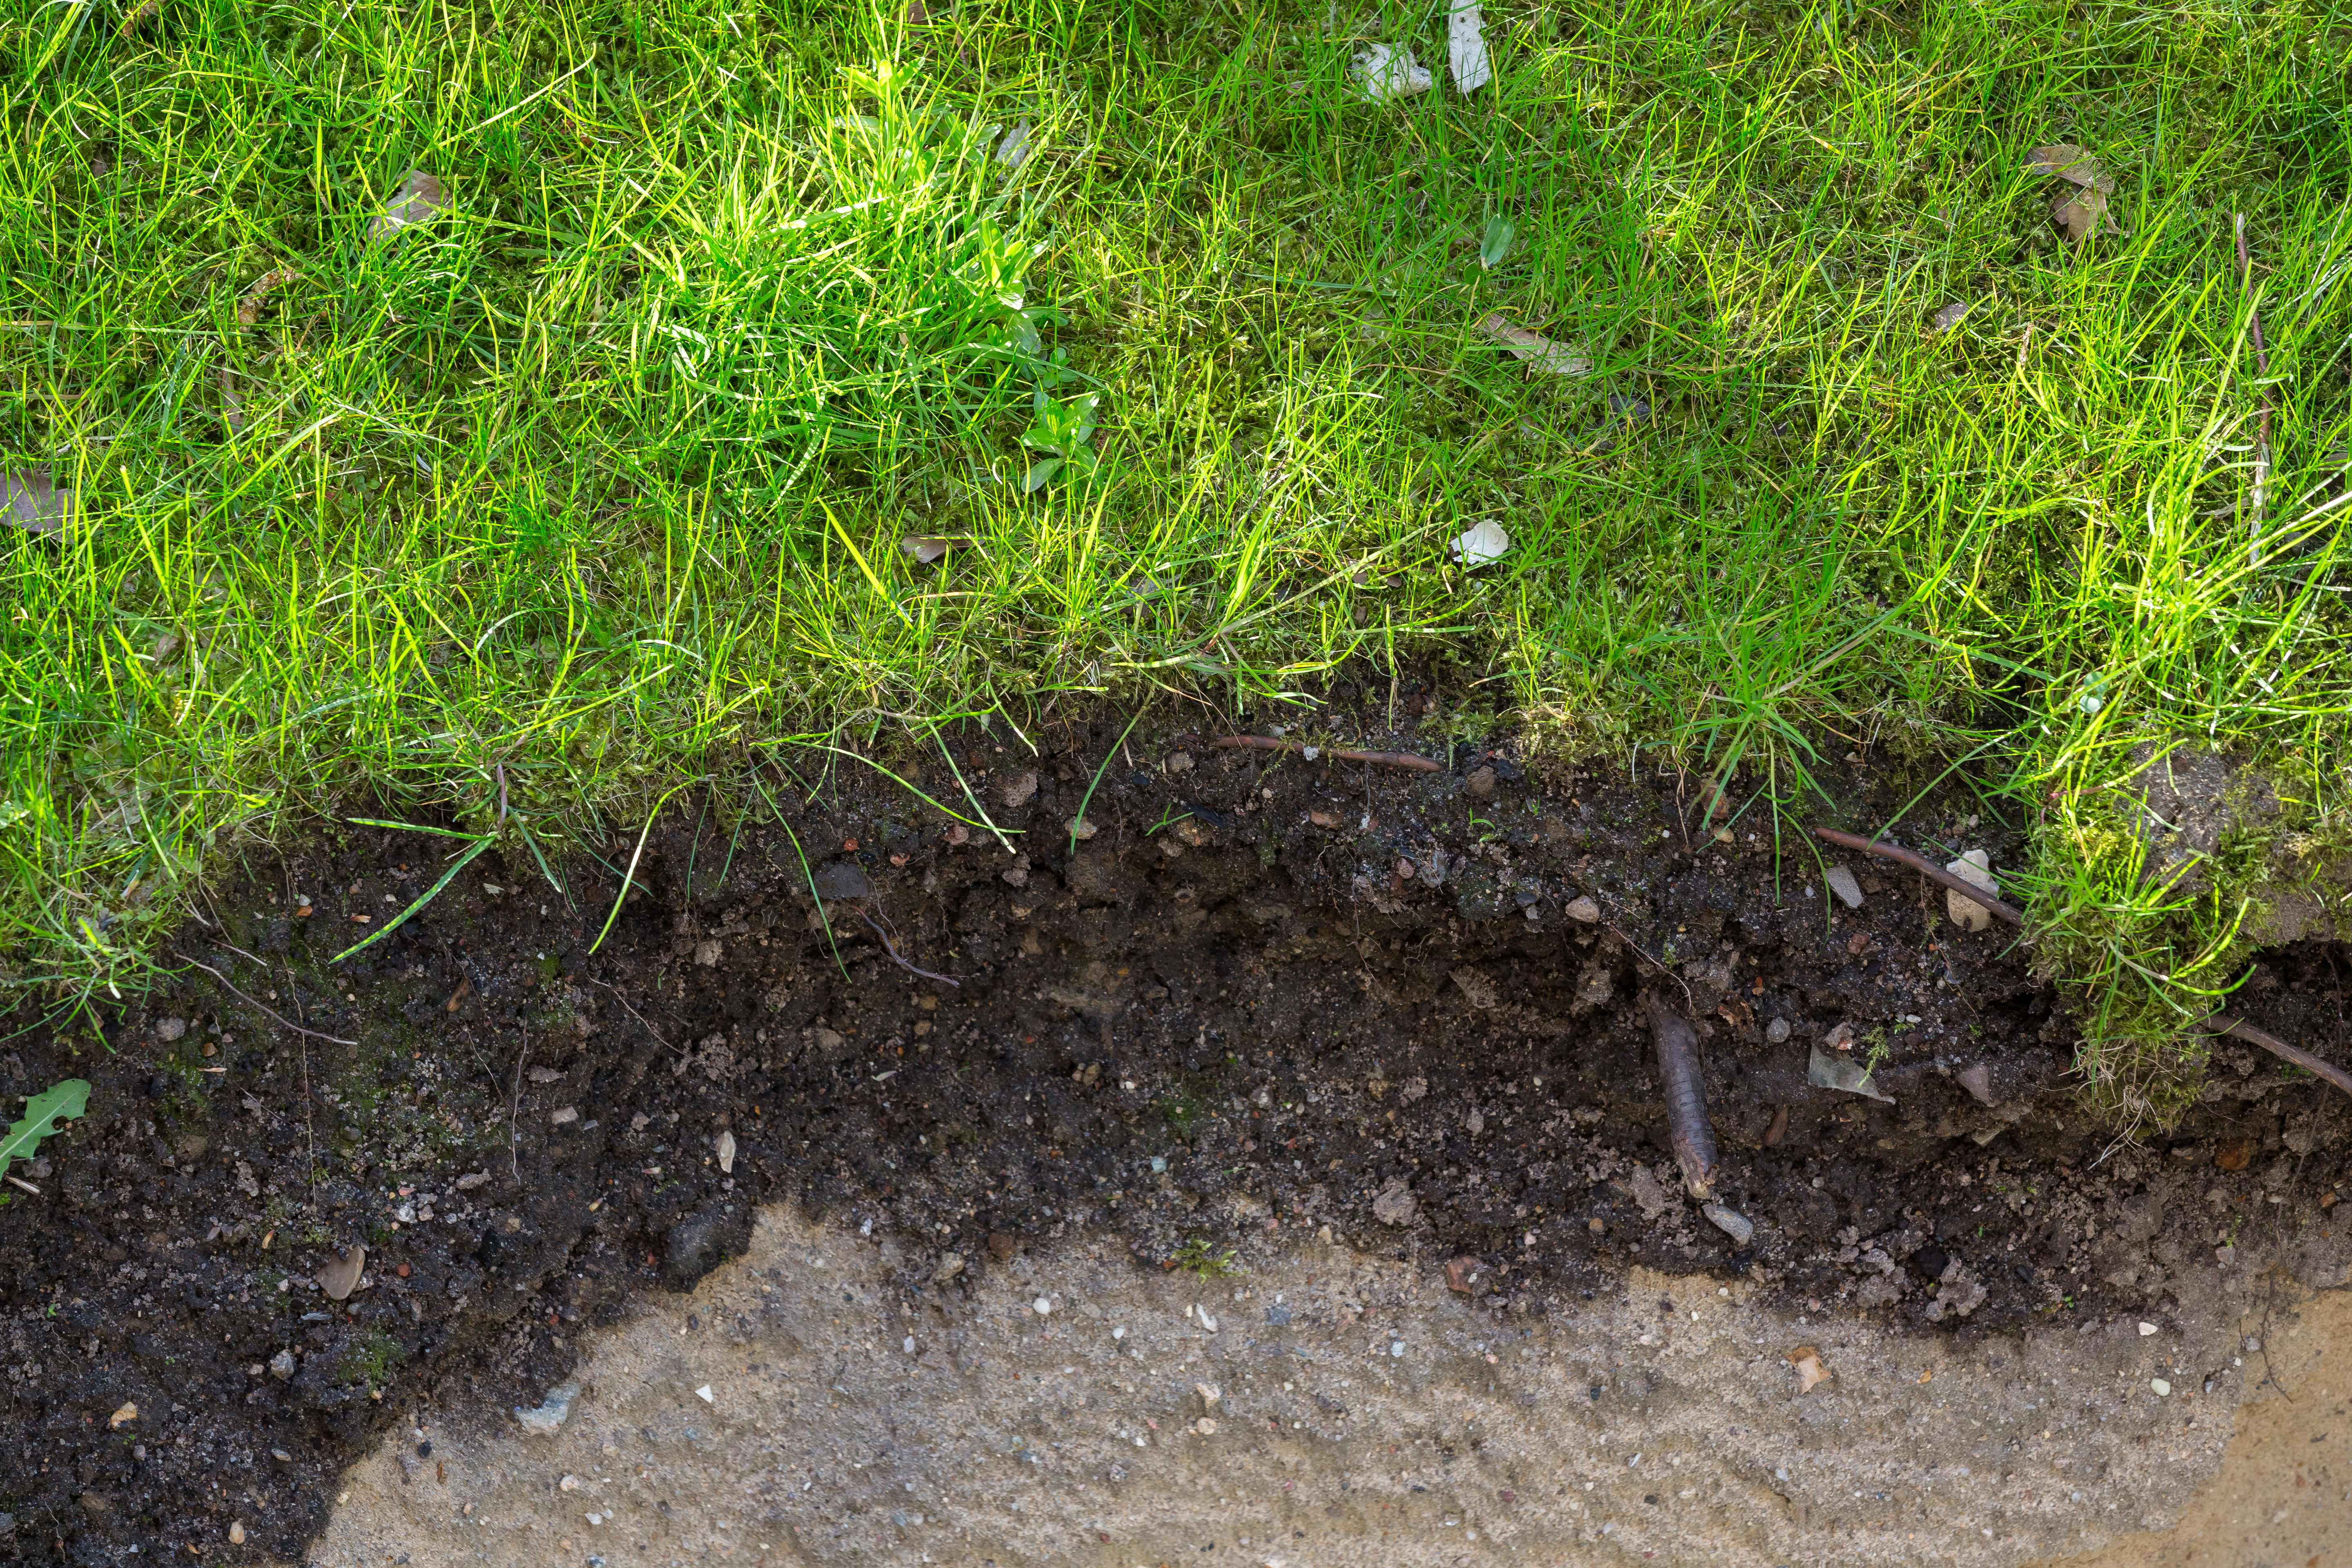 How much carbon can be stored by increasing your soil microbes?